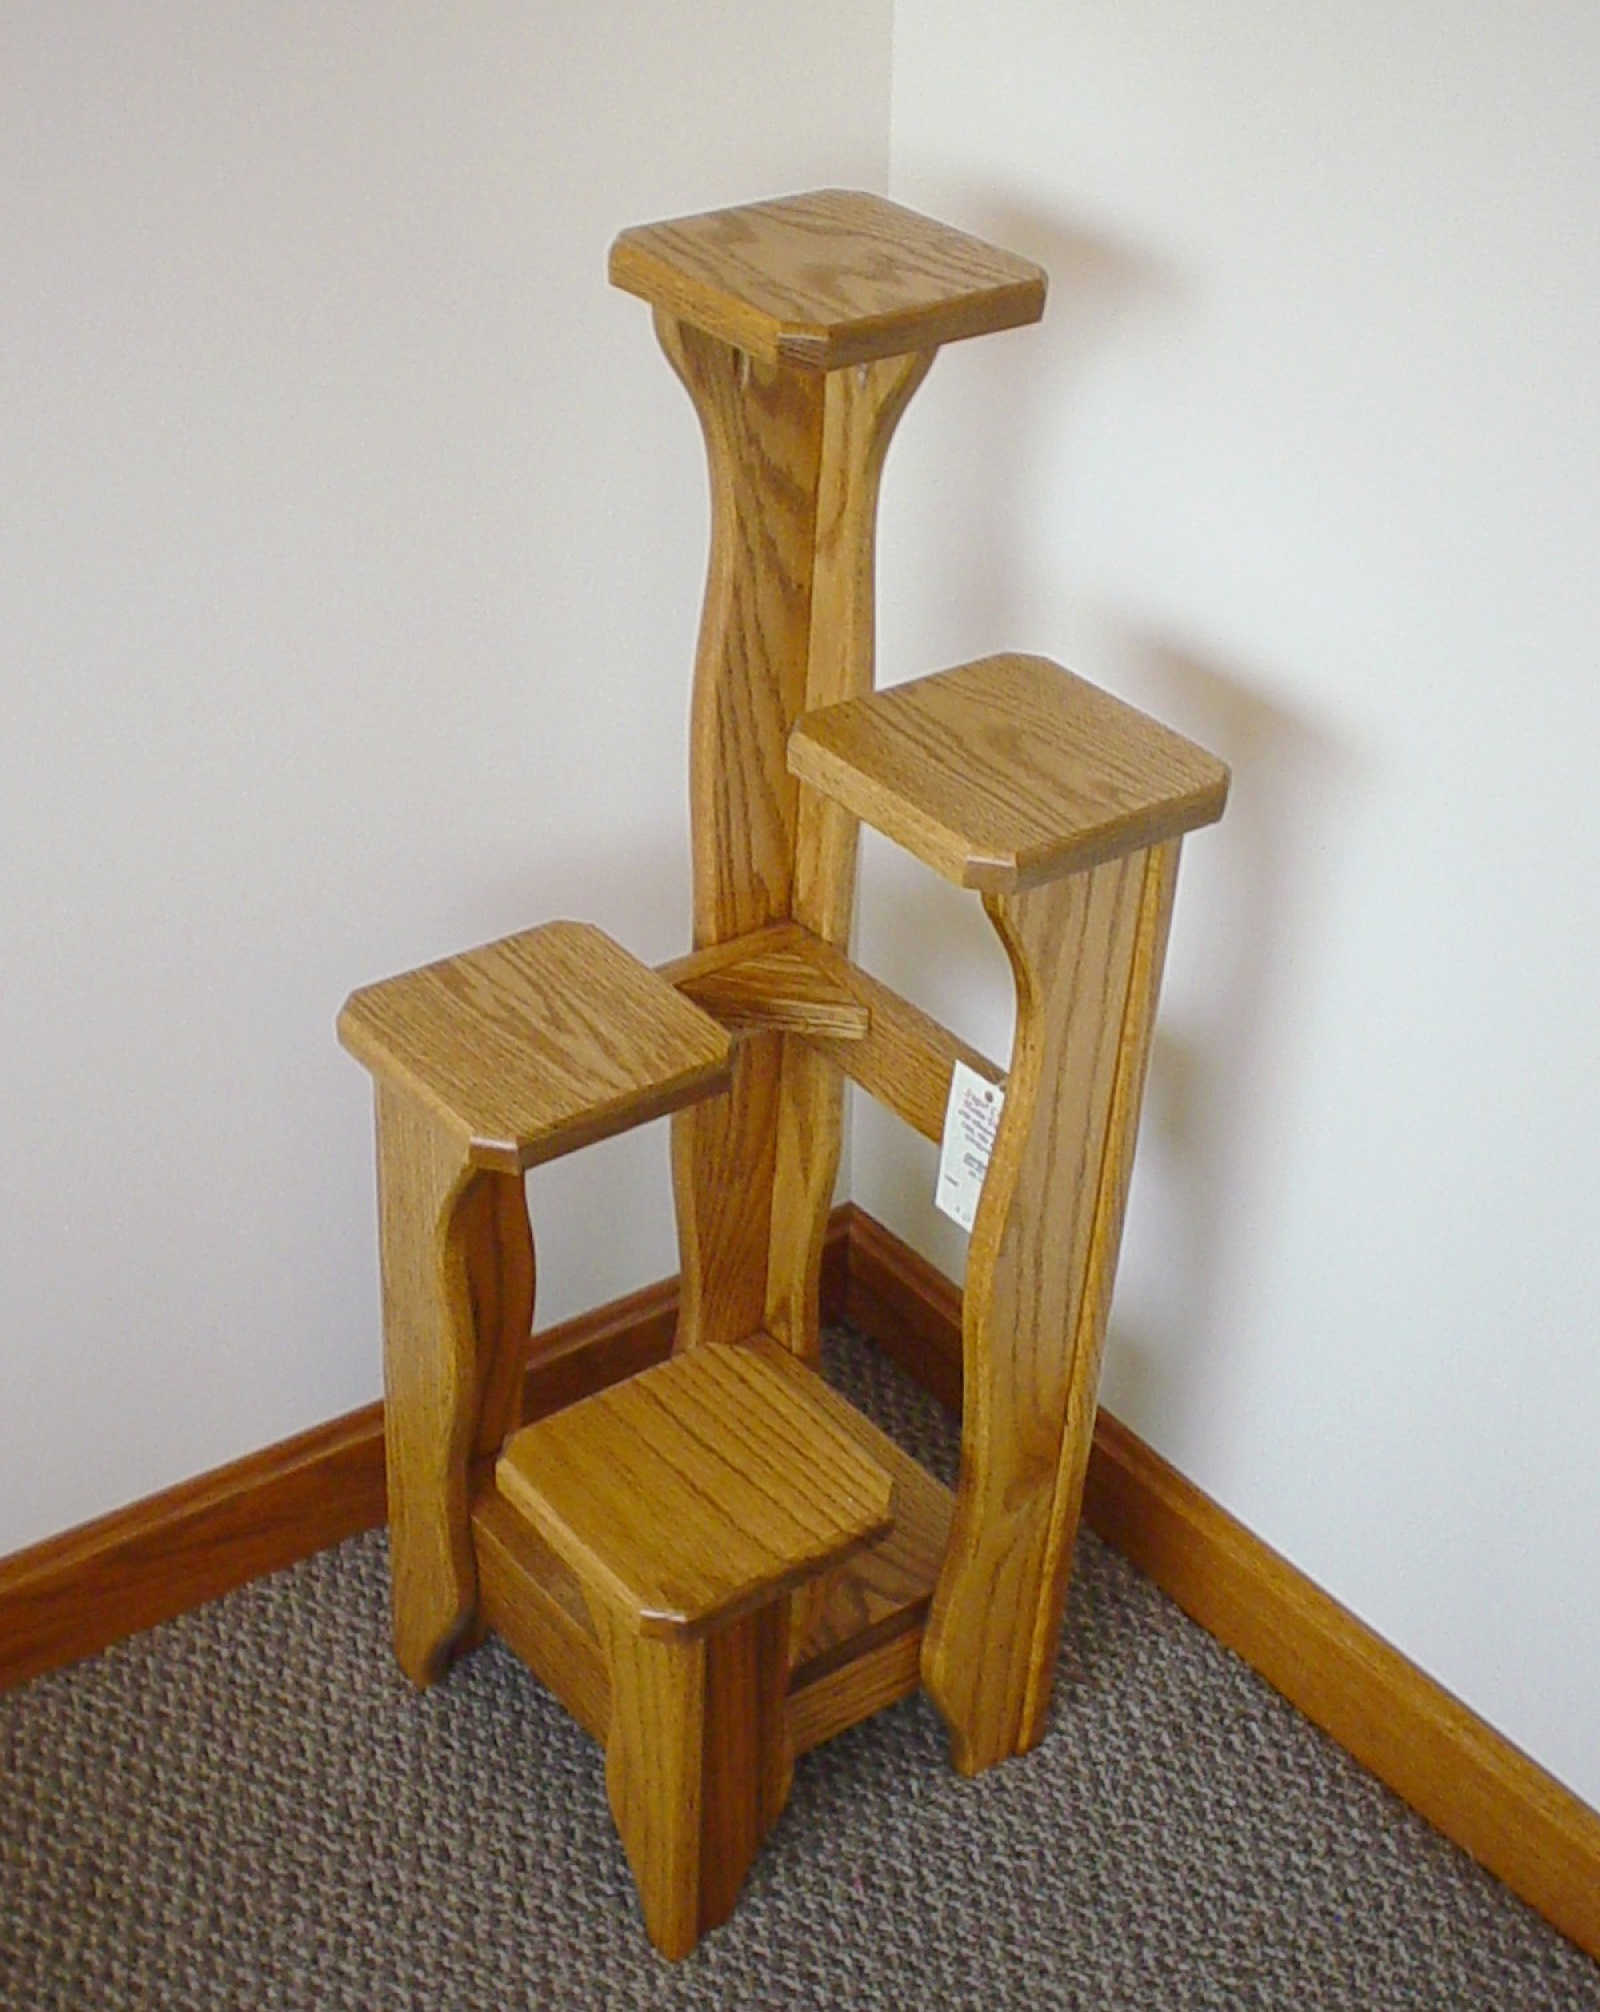 wood-plant-stands